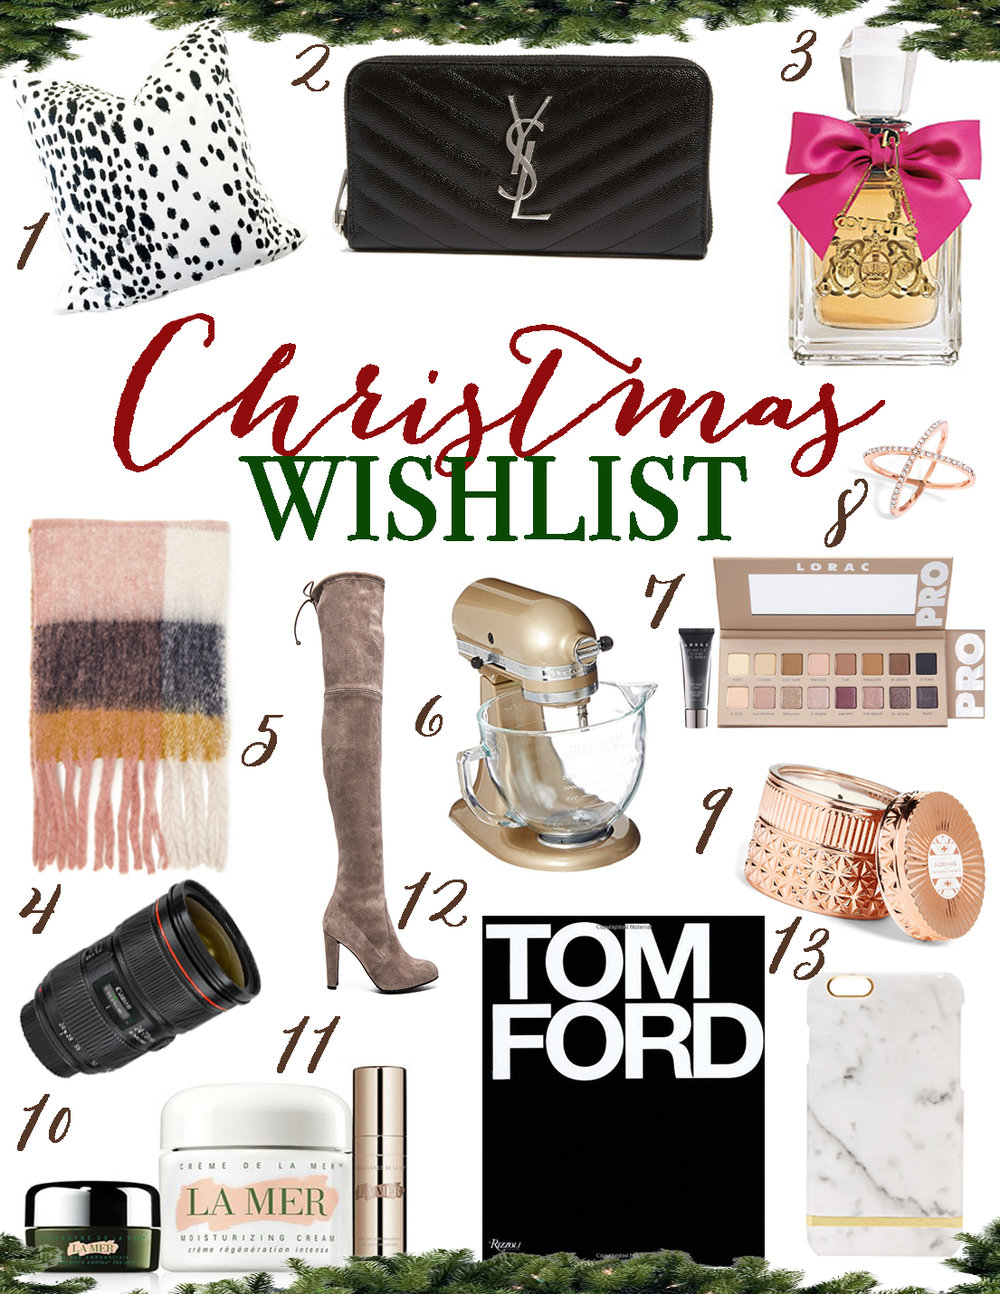 58411ed034740cd33317bfdd_Christmas Wishlist.jpg